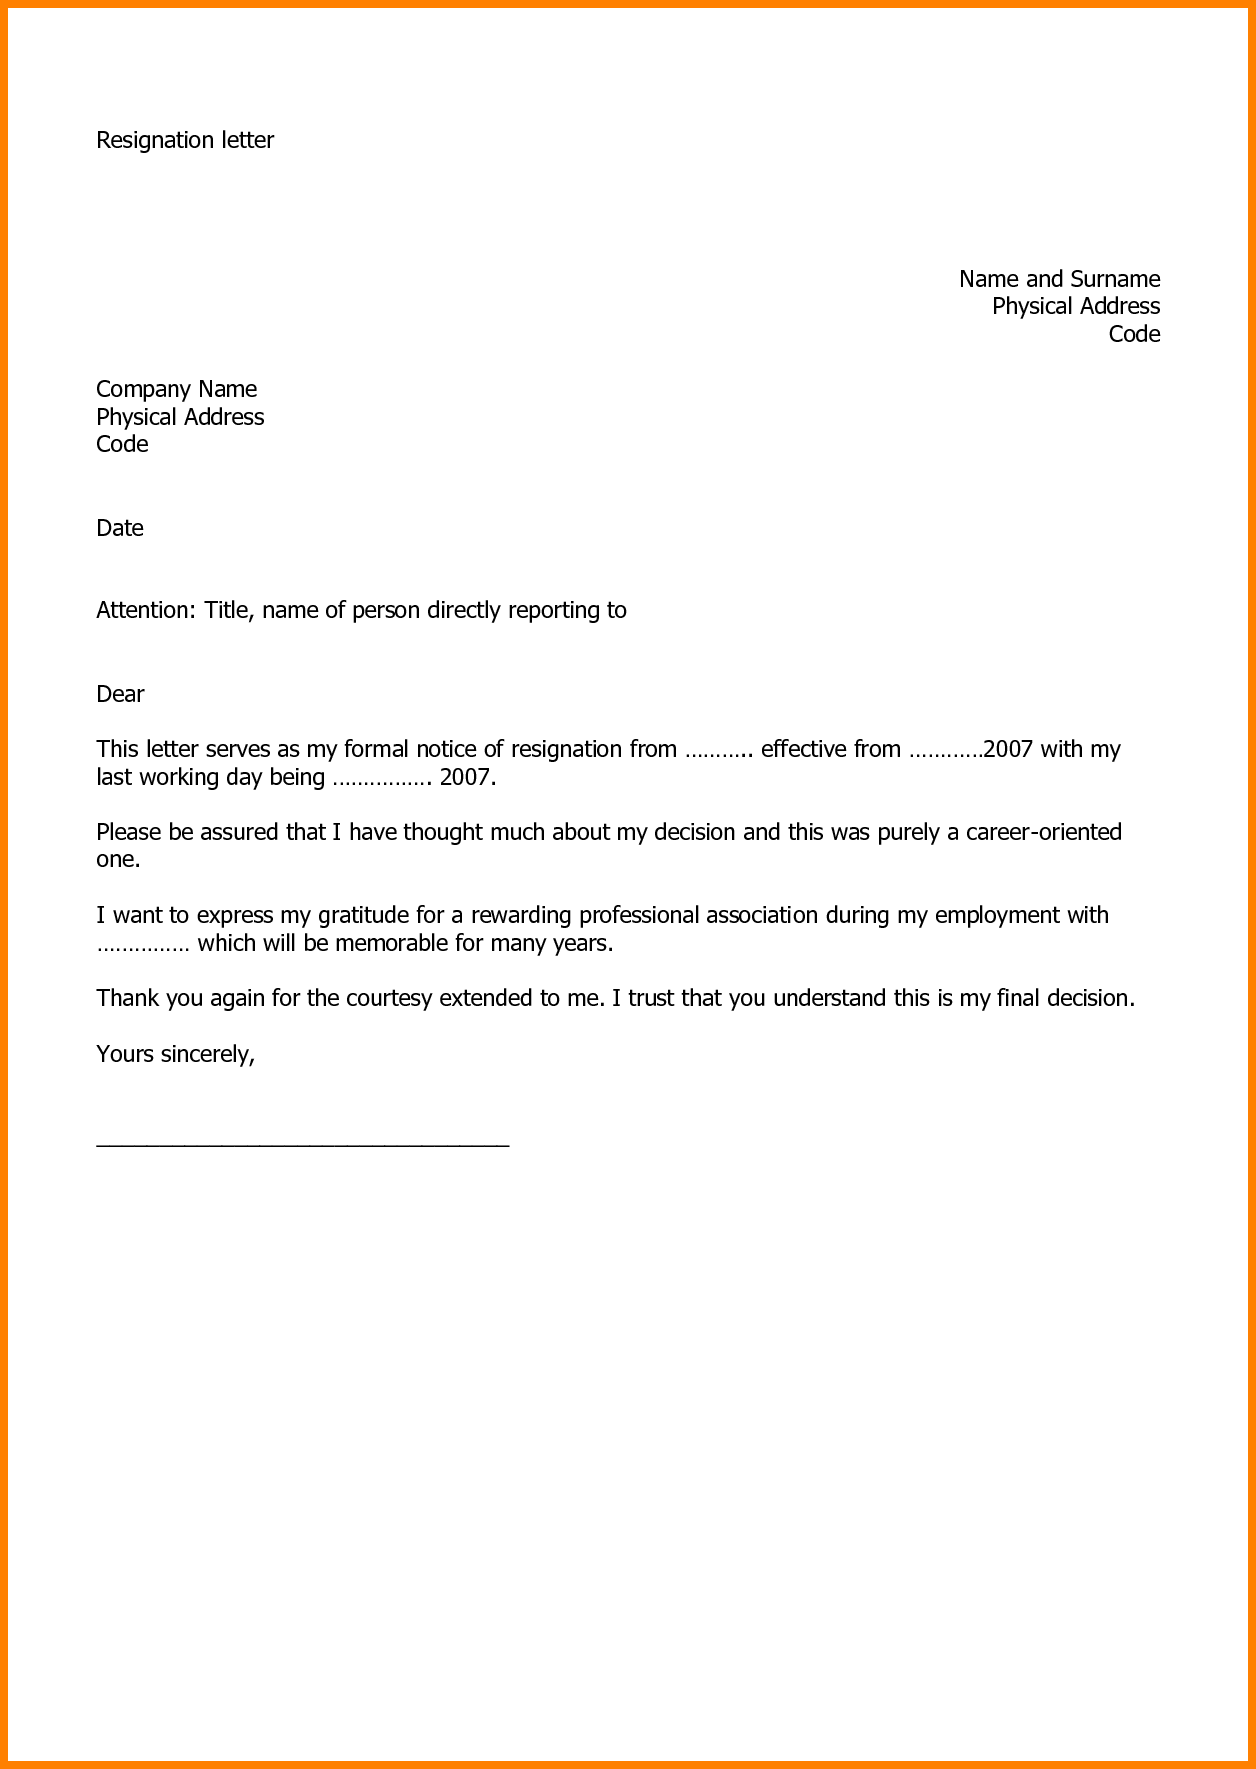 Letter format for job resignation resignation letter exampleg letter format for job resignation resignation letter example thecheapjerseys Image collections